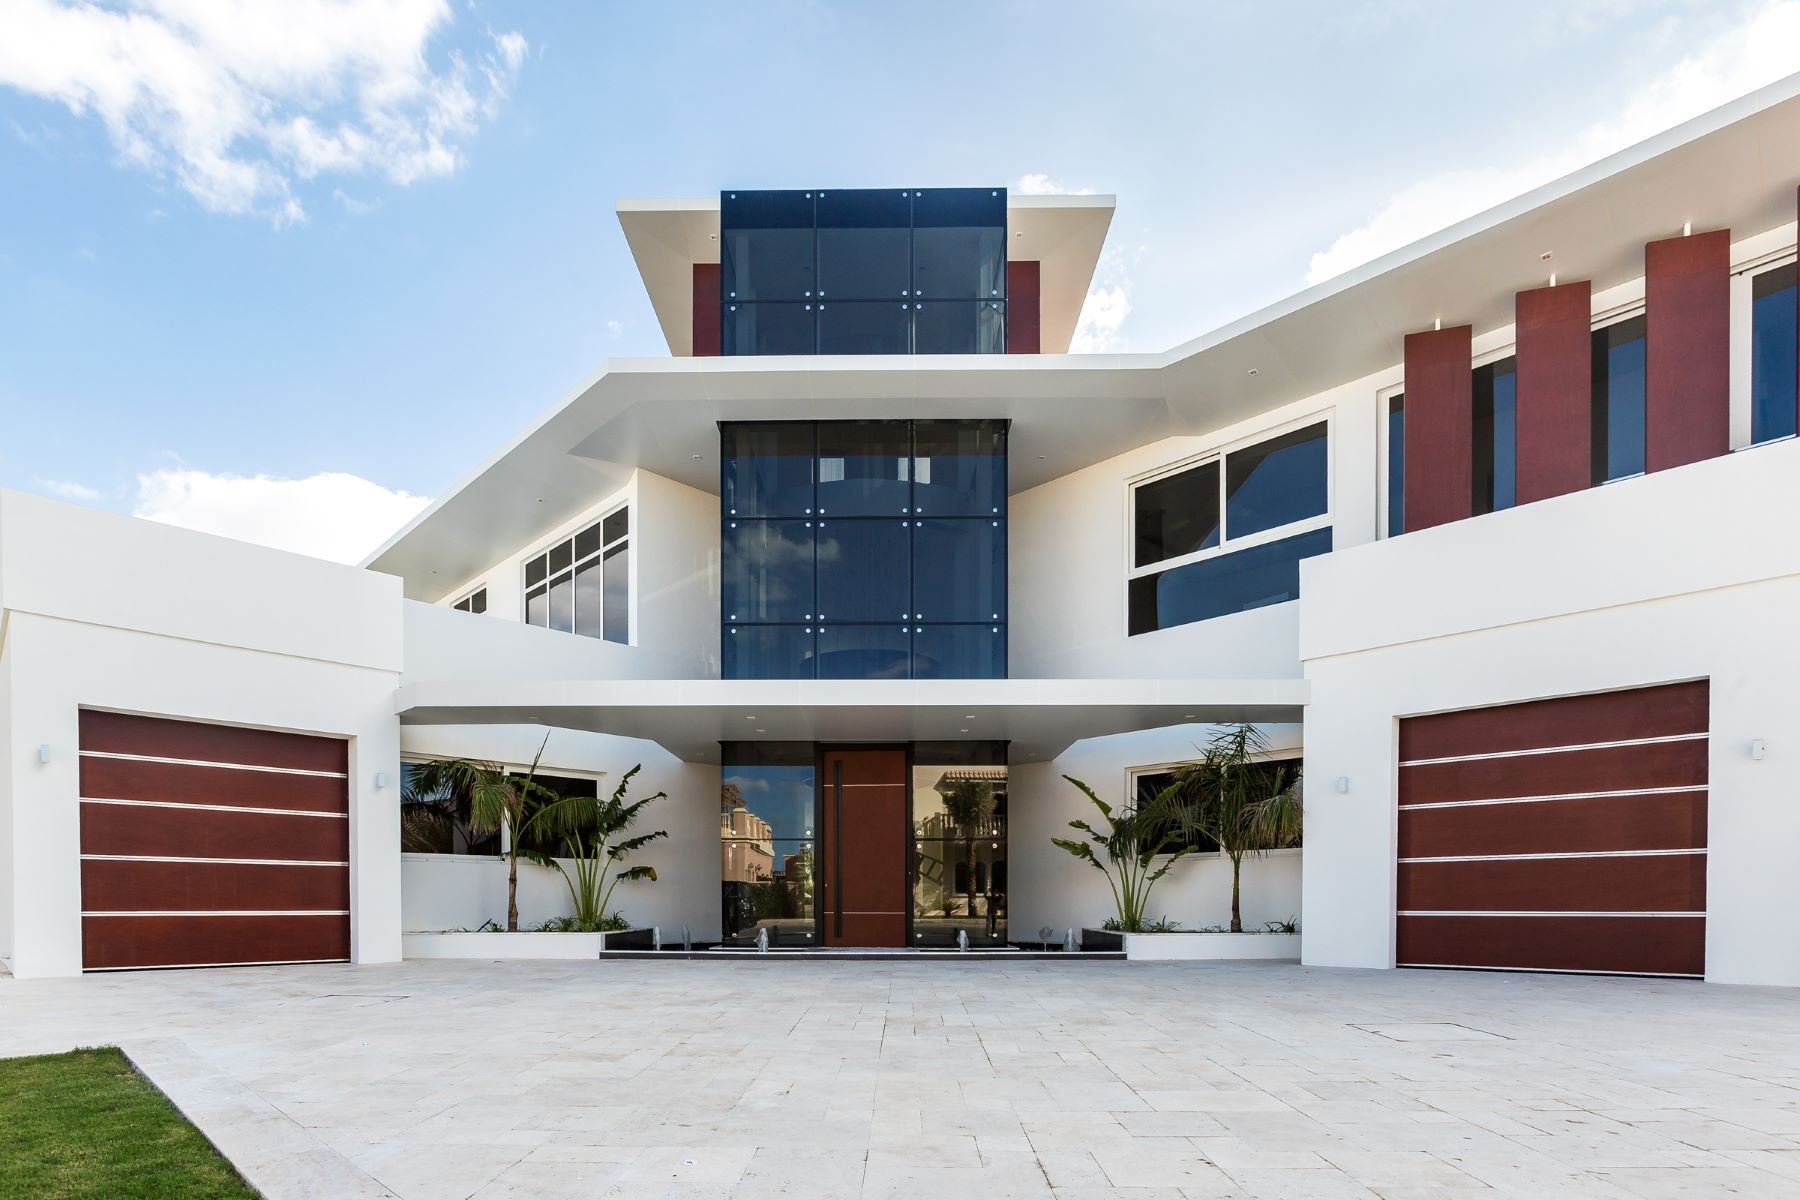 Single Family Home for Sale at Exquisitely Contemporary Villa with Stunning Views Dubai, United Arab Emirates